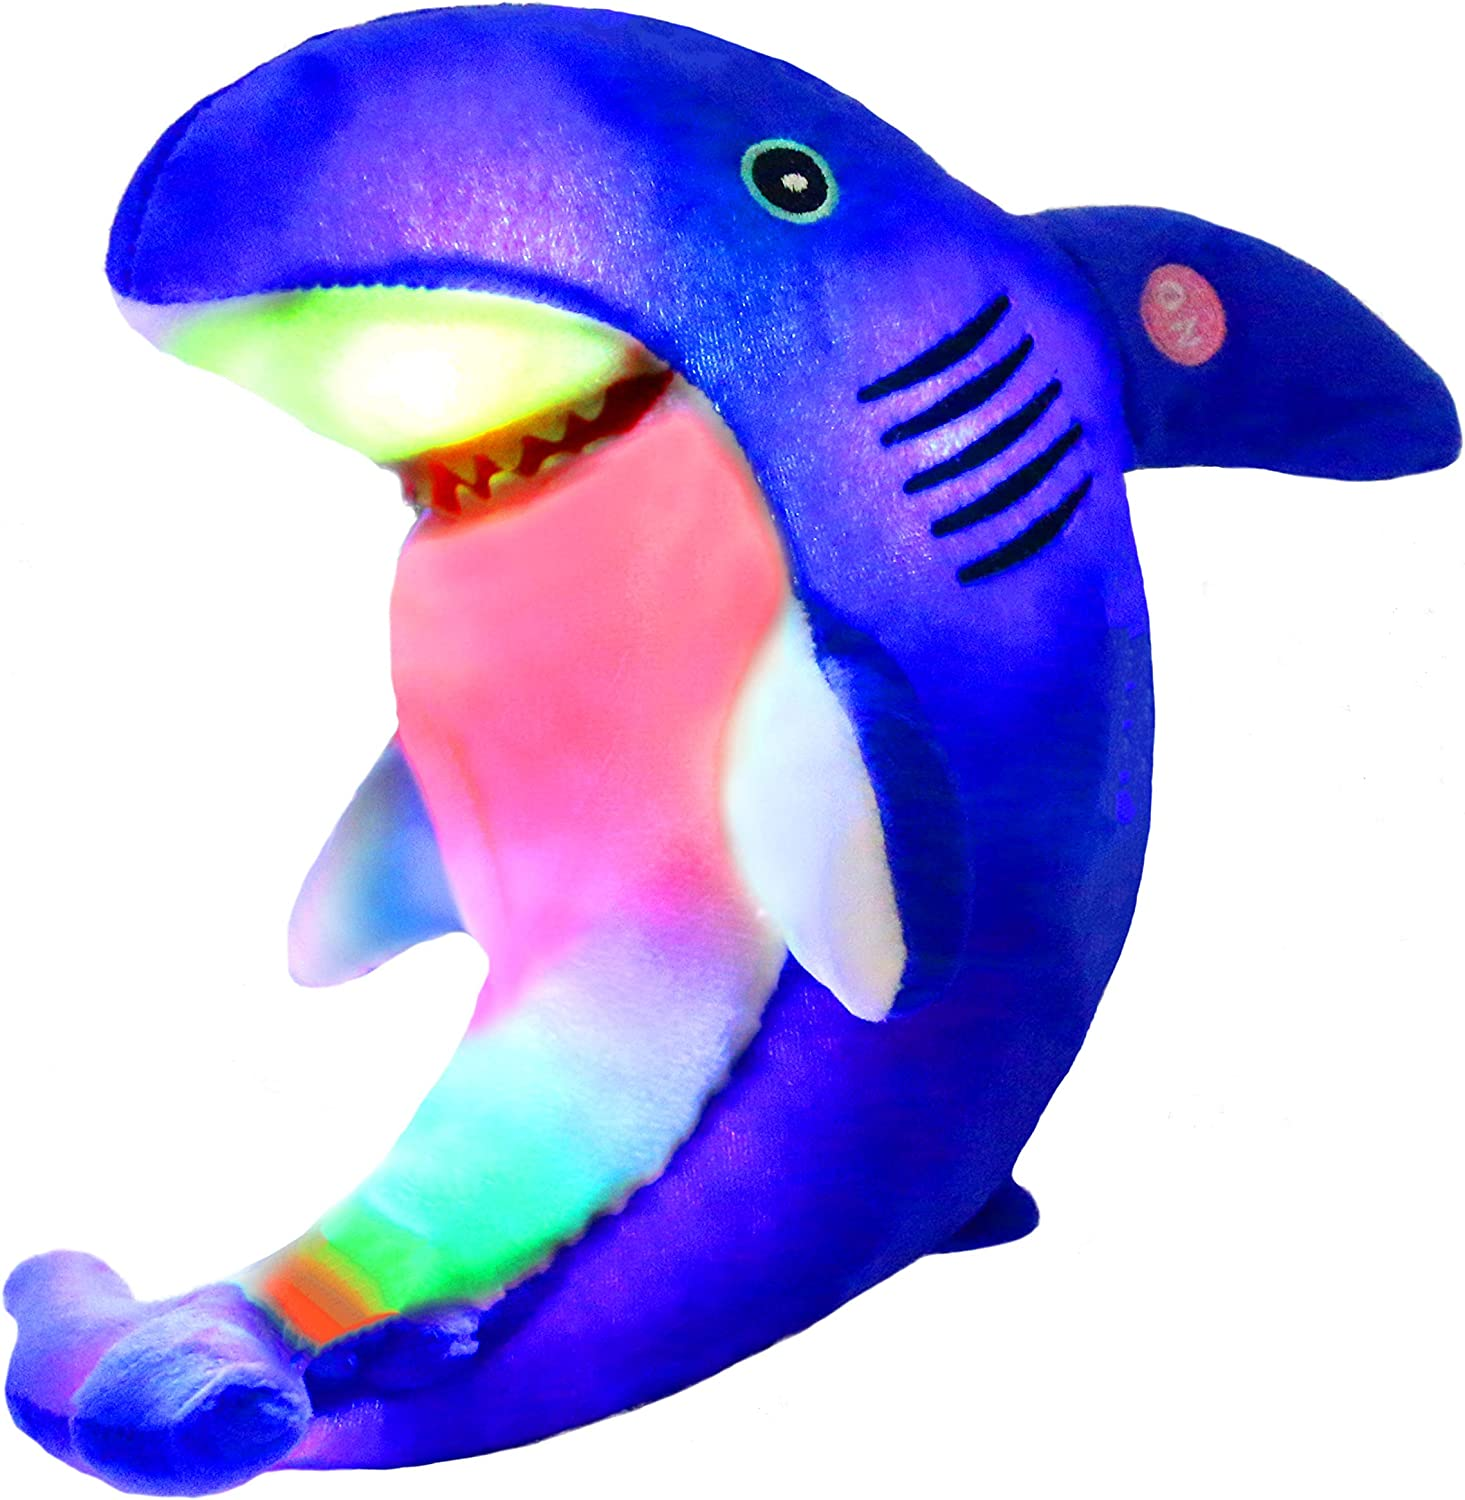 Bstaofy LED Blue Shark Stuffed Animal Glow Plush Ocean Species Toy Light up Afraid of Dark Birthday for Kids, 10 Inches